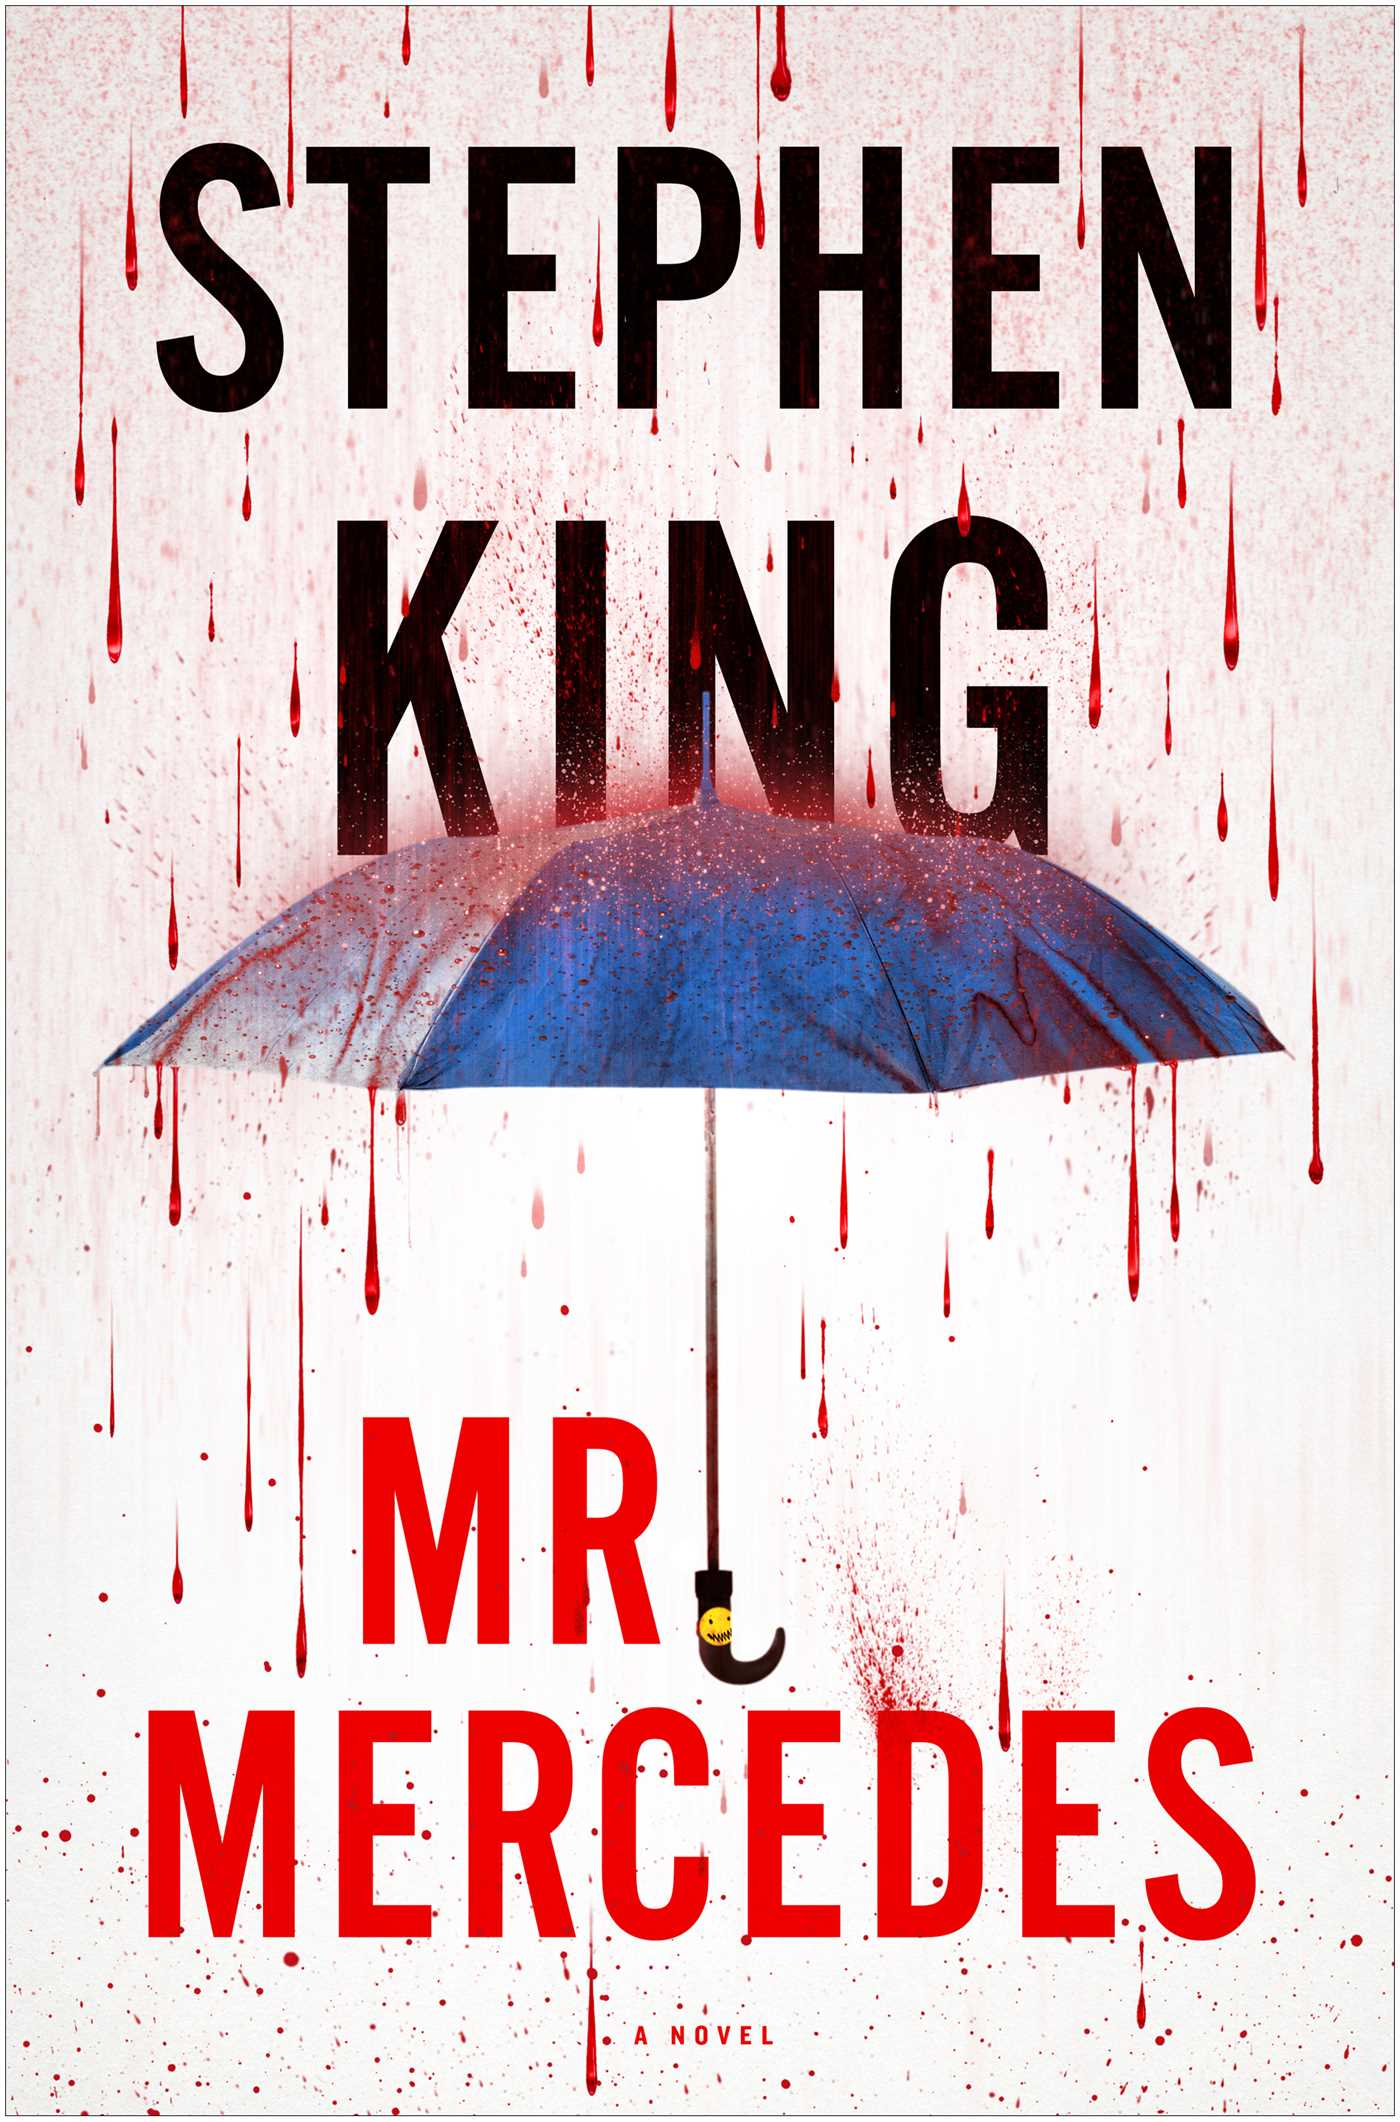 Mr-mercedes-9781476754451_hr